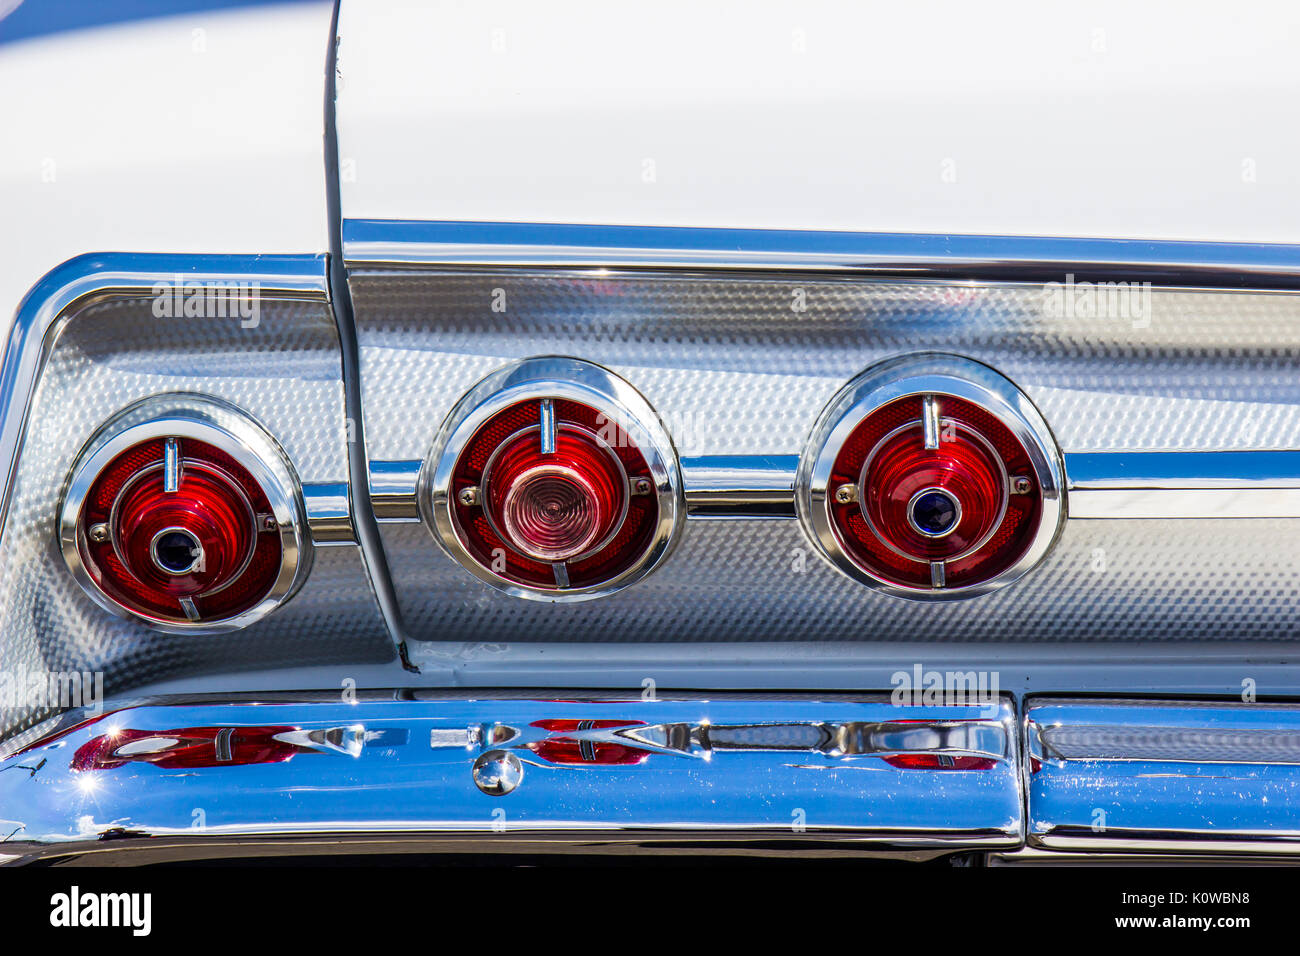 Vintage Tail Lights  & Chrome Bumper On Classic Car - Stock Image